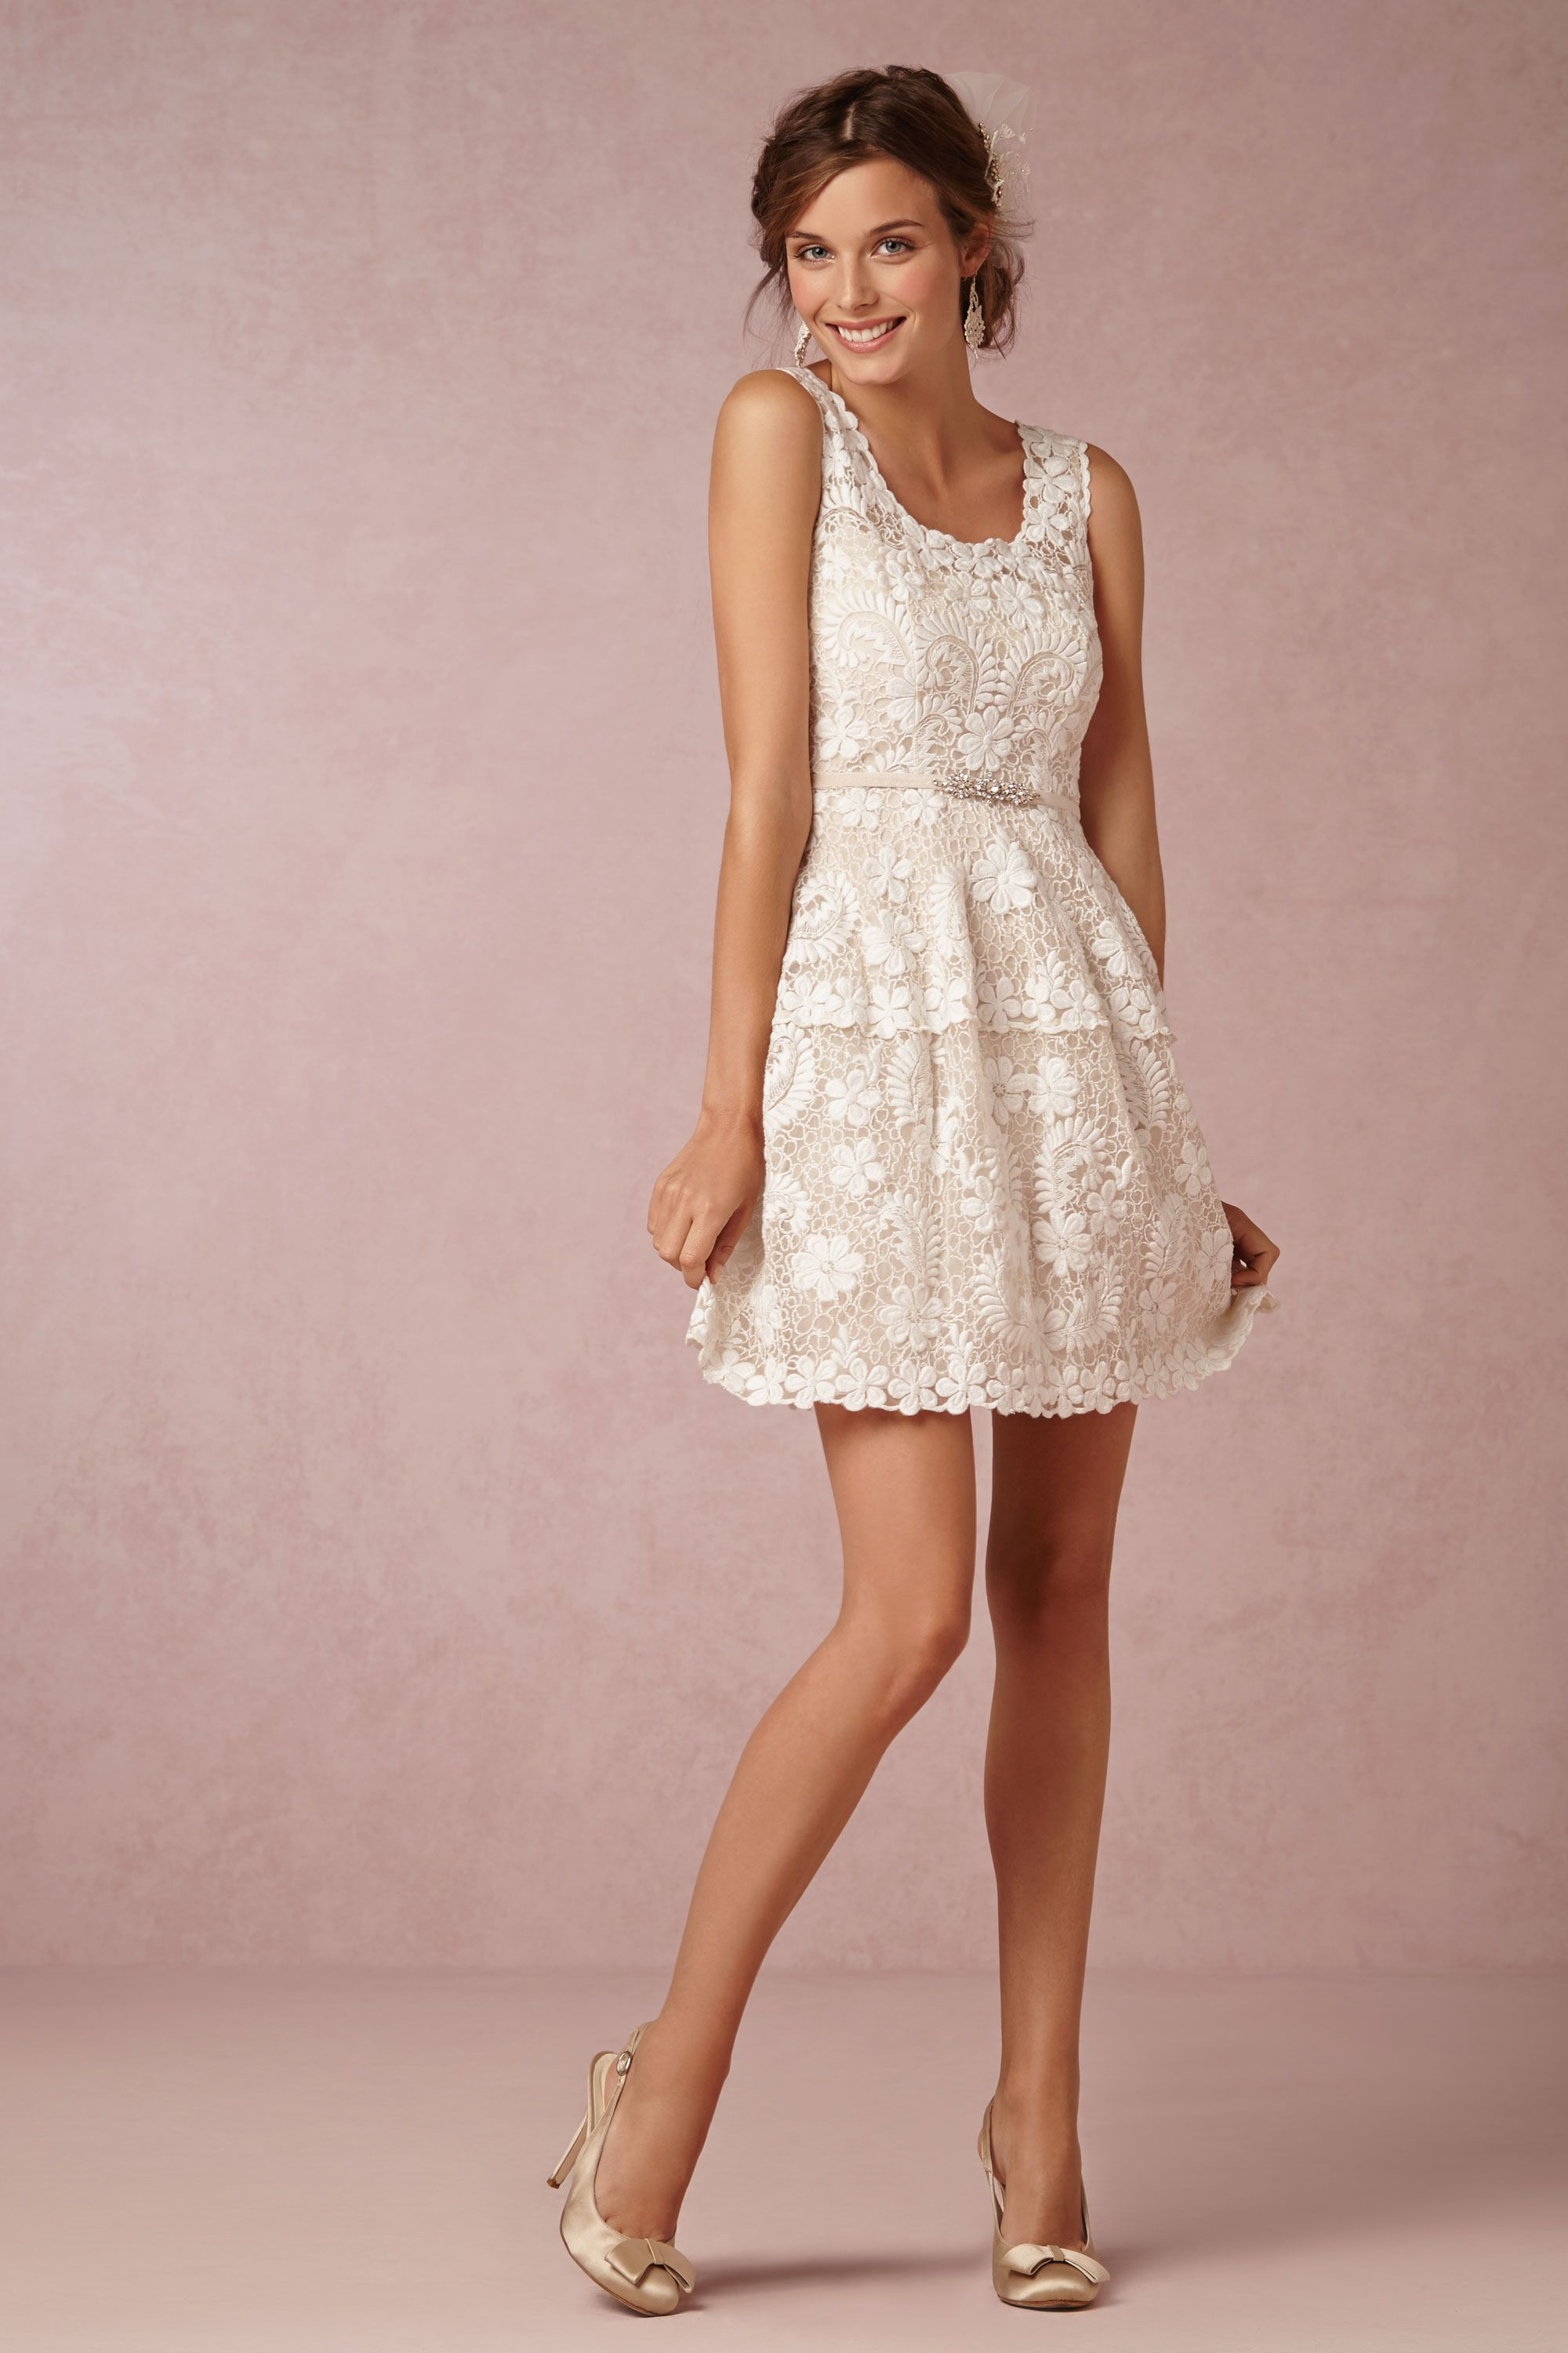 Possible Shower or Reception Dress | .:.DRESSES/VESTIDOS ...